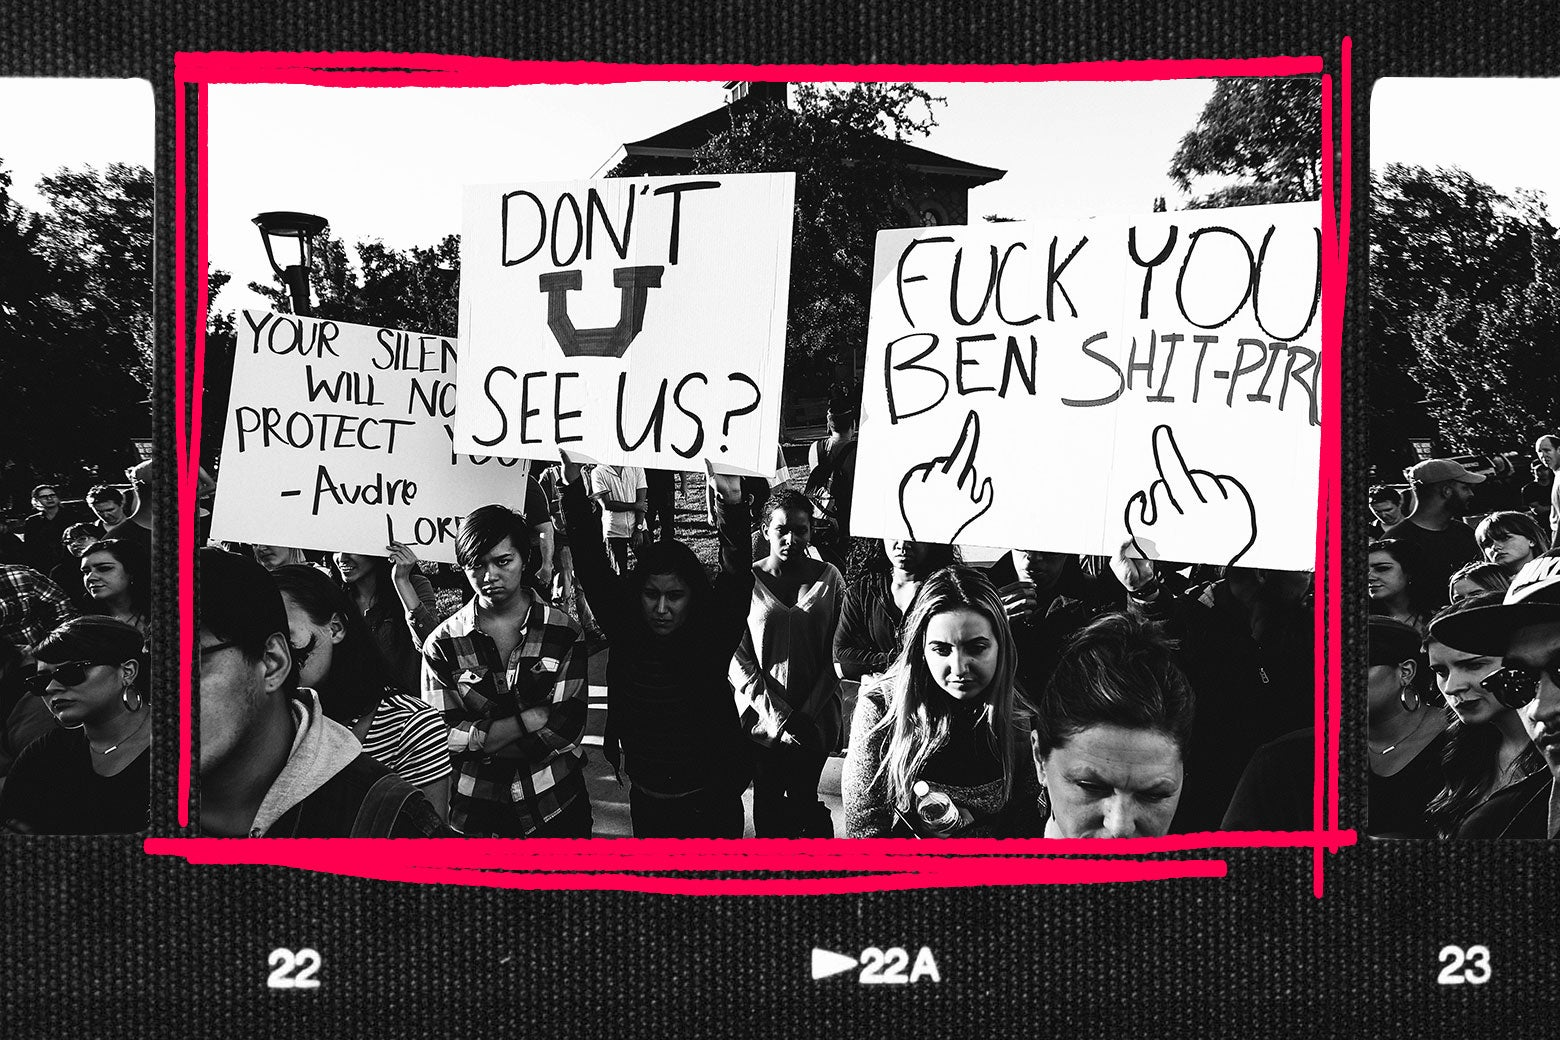 A contact sheet showing a student protest against Ben Shapiro at the University of Utah.